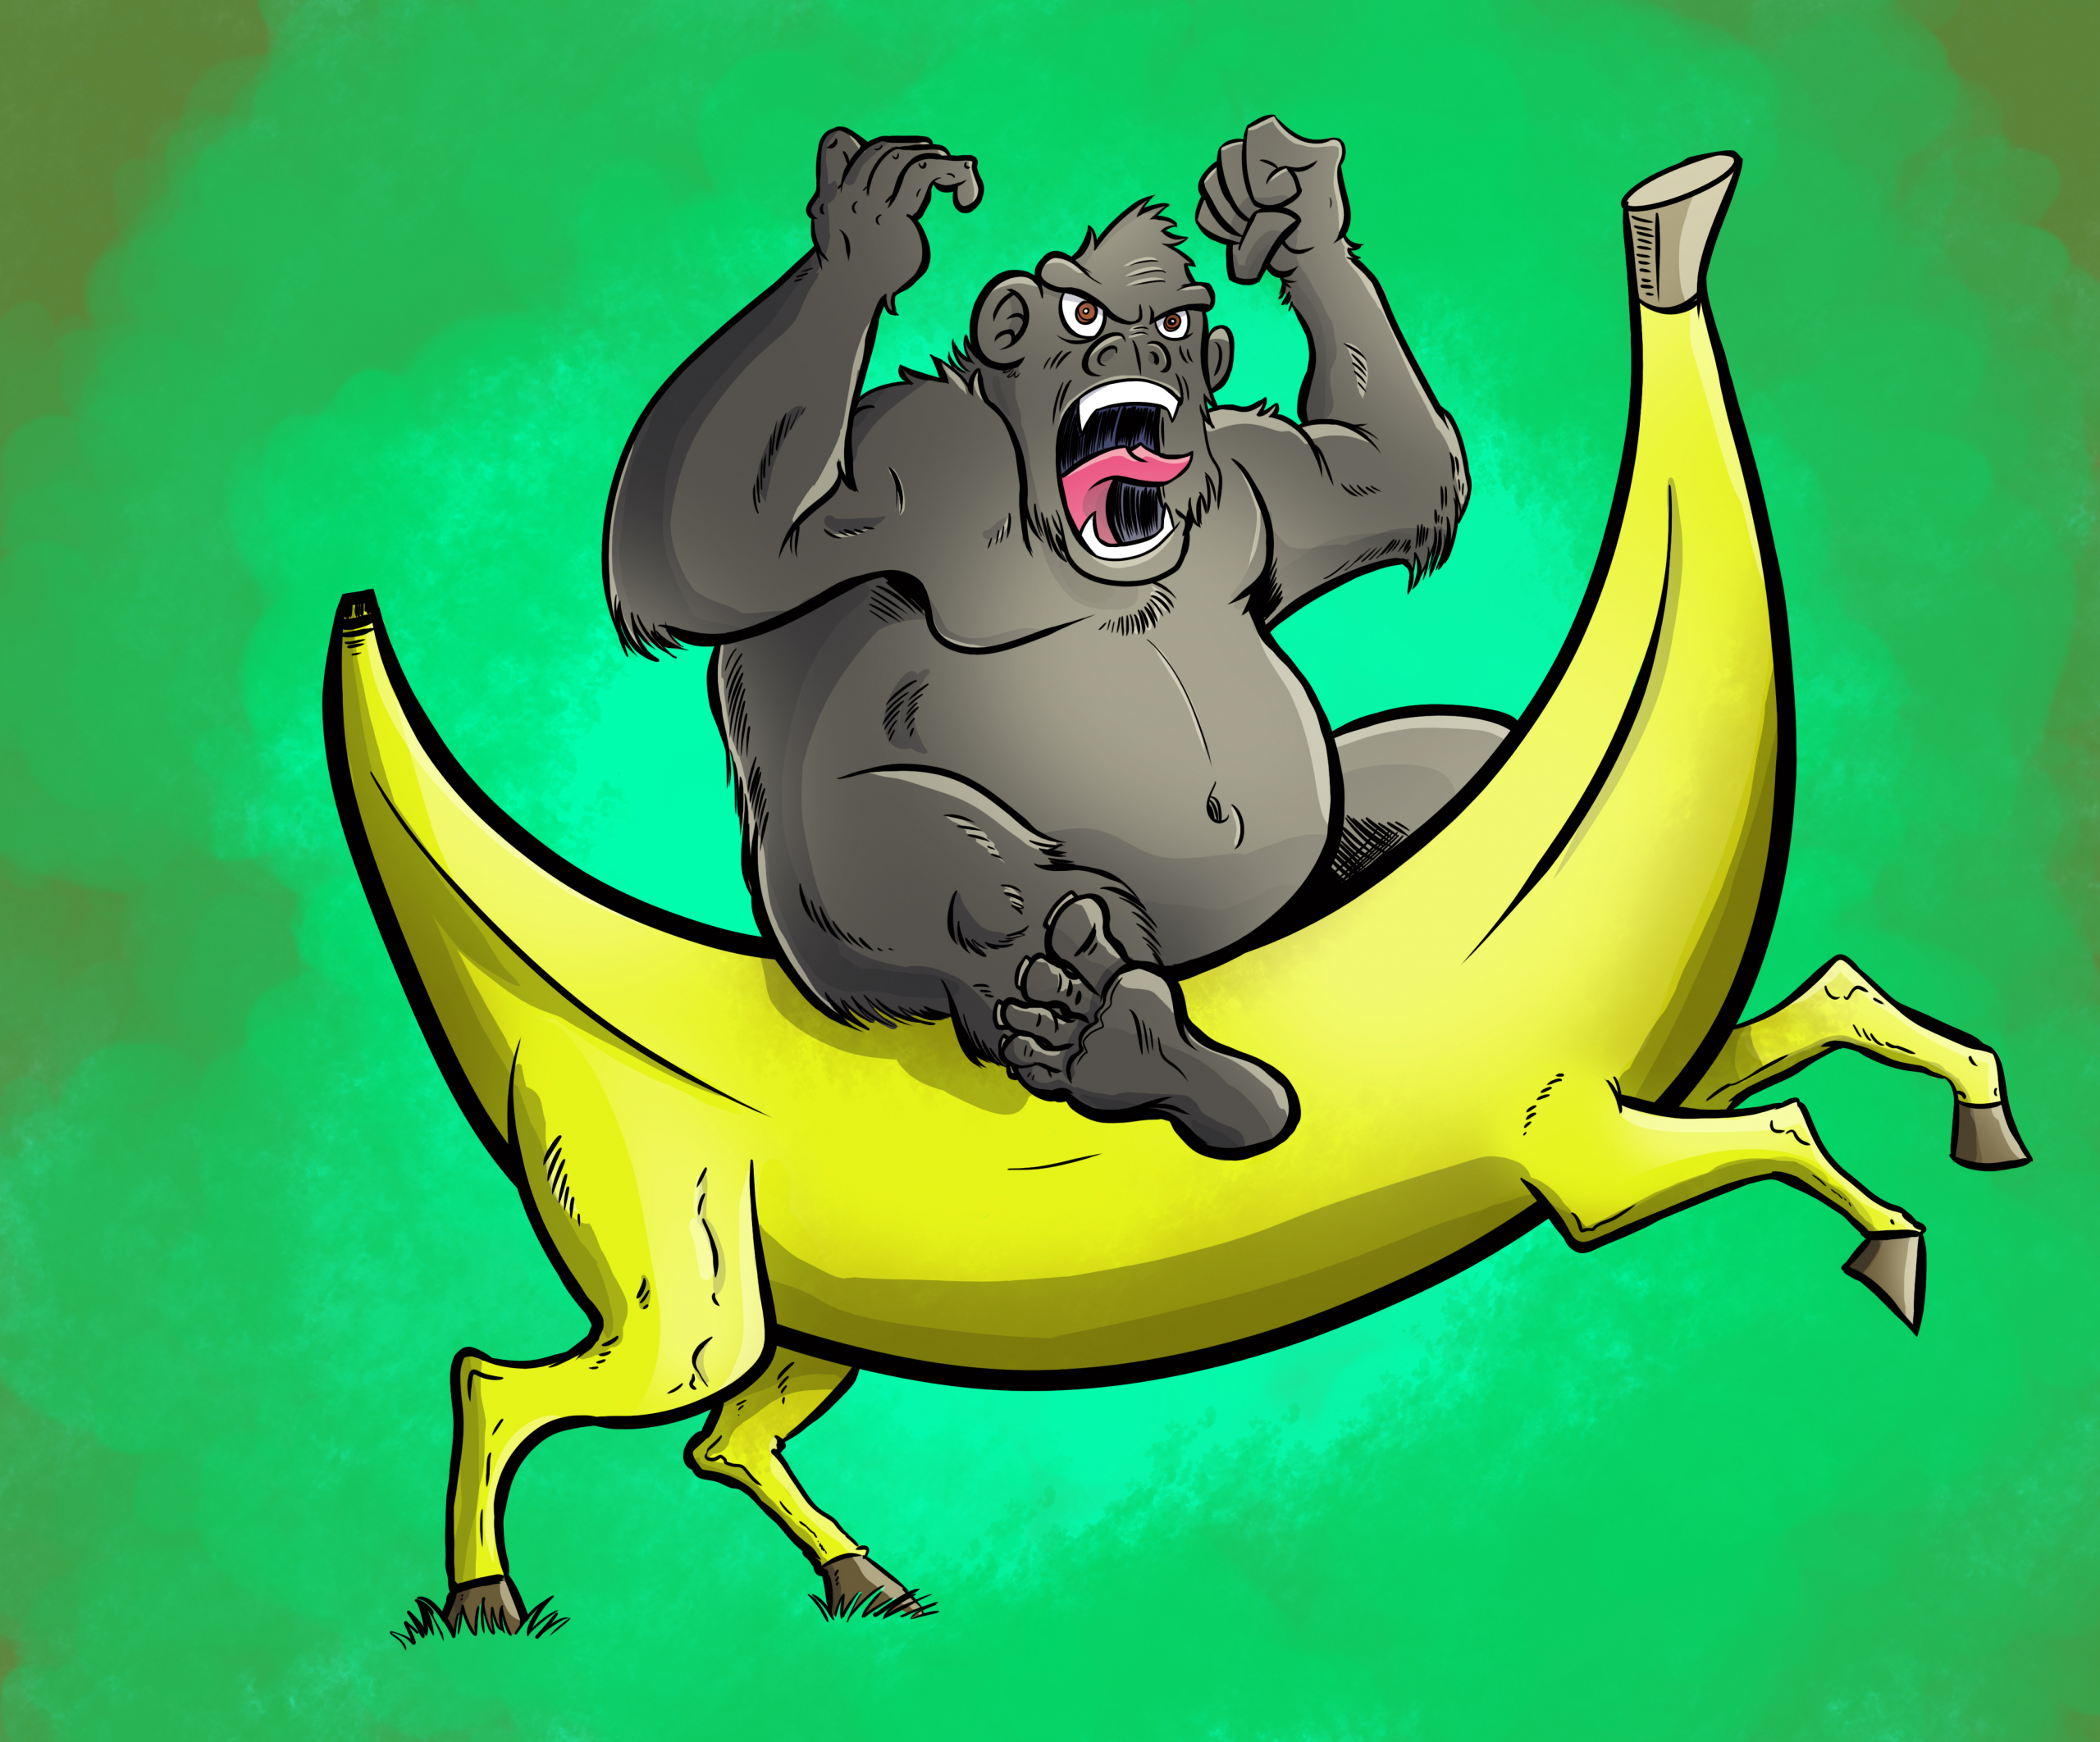 652476_crockercomics_gorilla-on-a-banana-horse